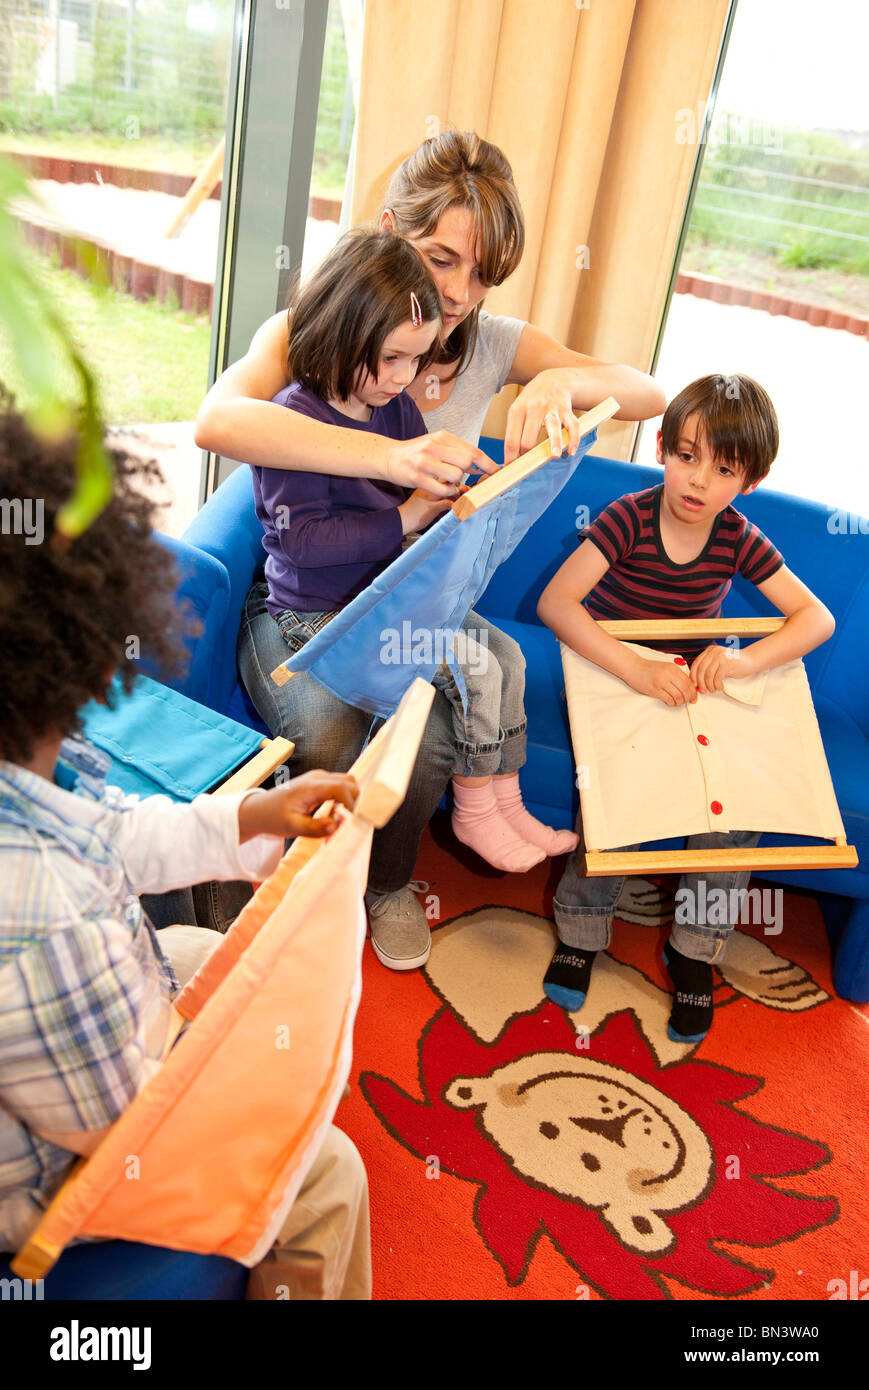 Kindergarten teacher and children playing fasteners frames, elevated view Stock Photo